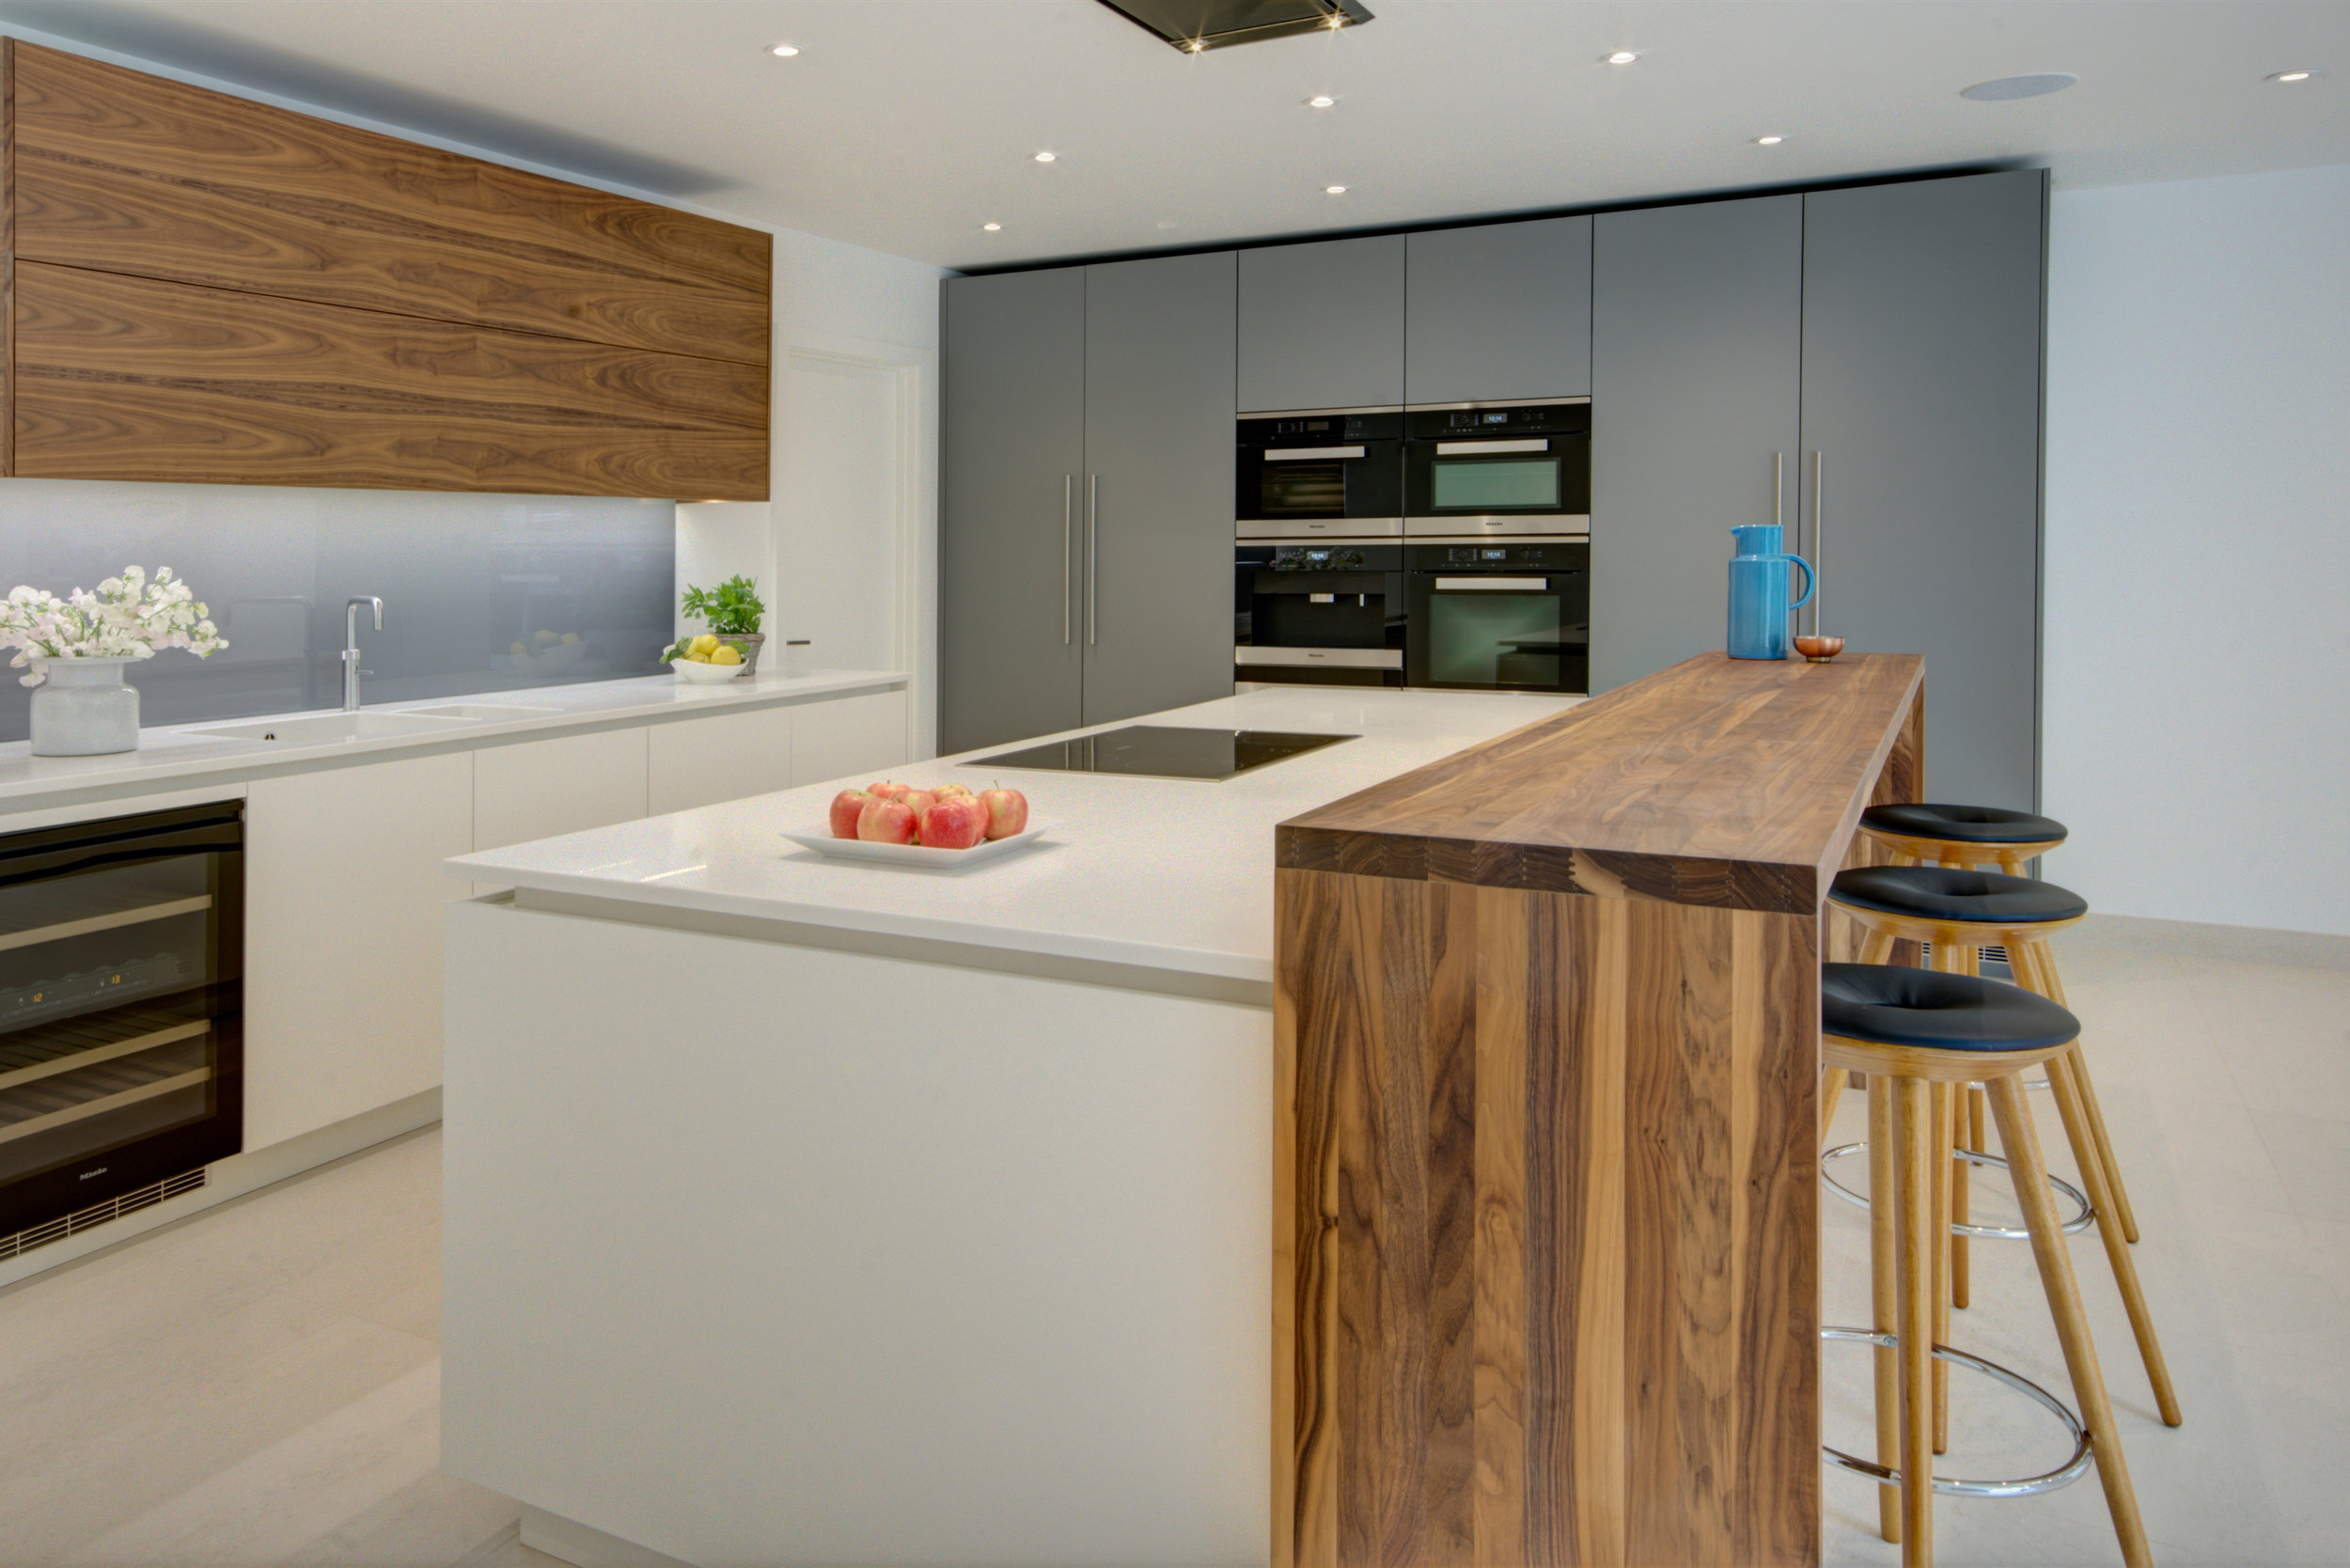 Contemporary kitchen design for a modern development with light coloured painted base units, walnut wall units and bar.